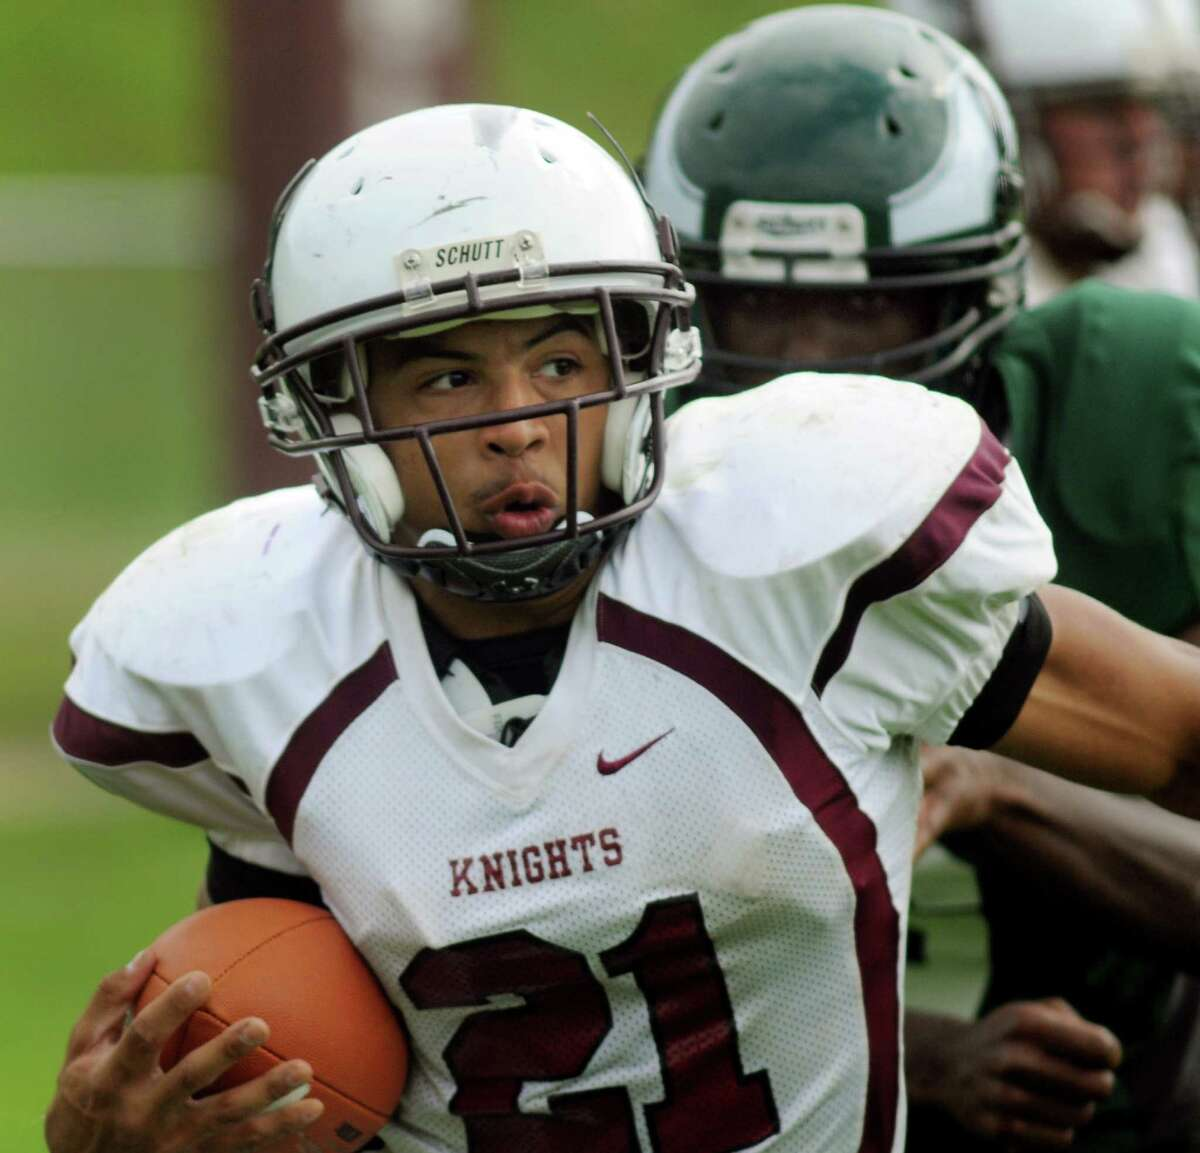 Lansingburgh's Anthony Walker carries the ball during their football game against Green Tech on Saturday, Sept. 14, 2013, at Bleecker Stadium in Albany, N.Y. (Cindy Schultz / Times Union)